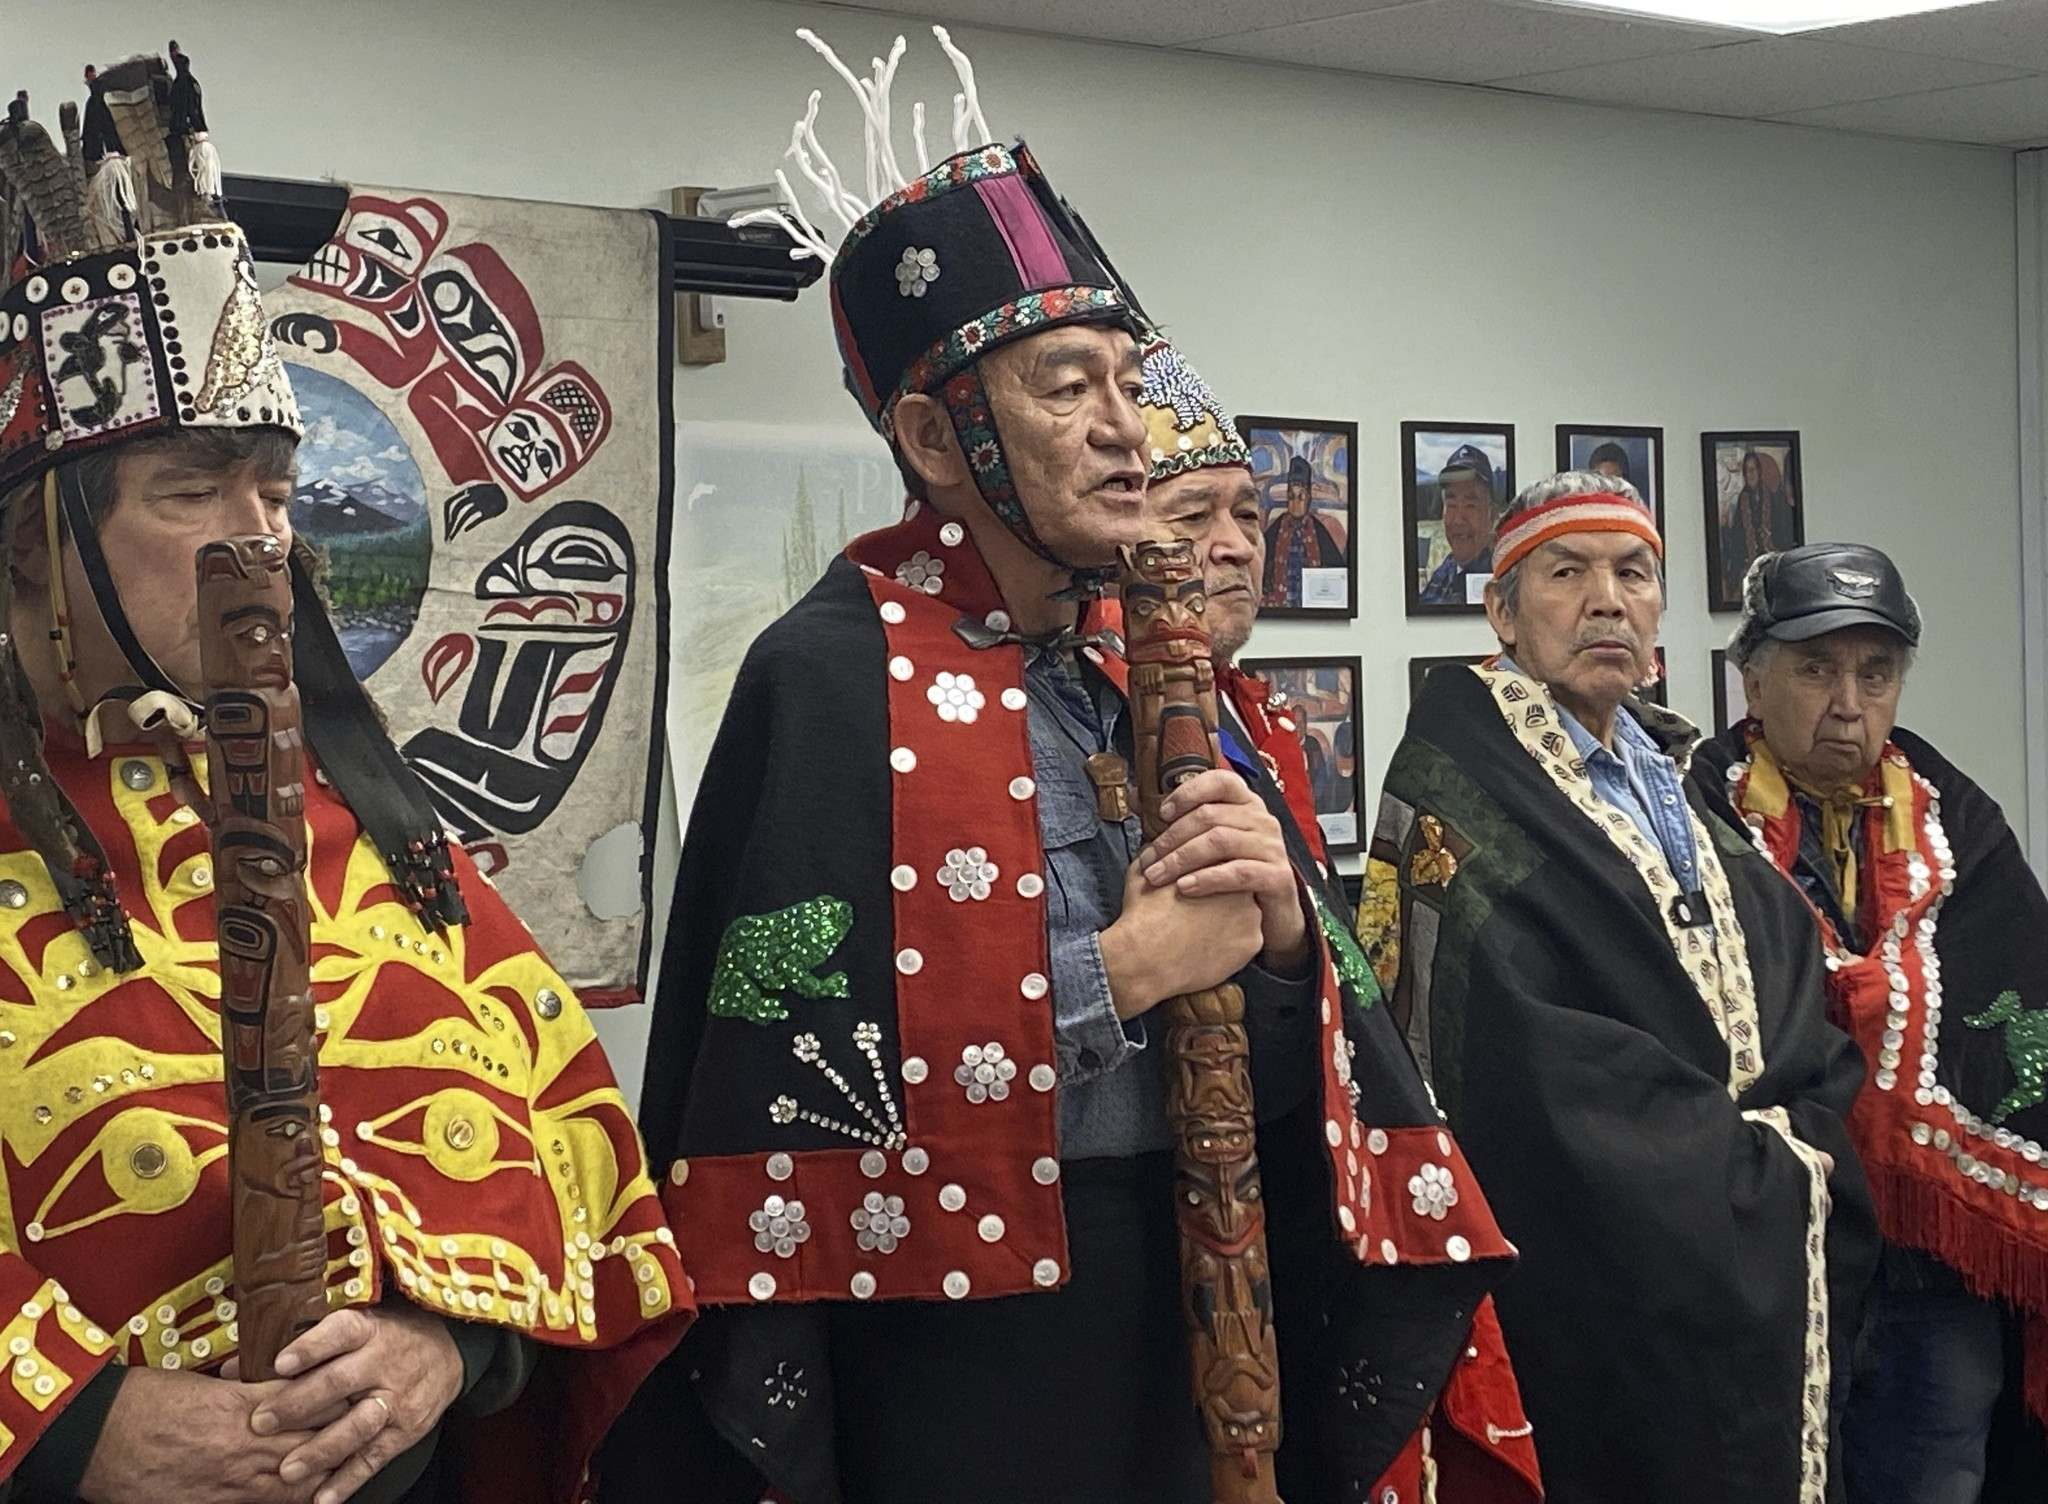 Na'moks (centre), a spokesman for the Wet'suwet'en hereditary chiefs, says they will not meet with representatives of a natural gas company that wants to build a pipeline through the First Nation's traditional territory. (Amy Smart / The Canadian Press)</p>